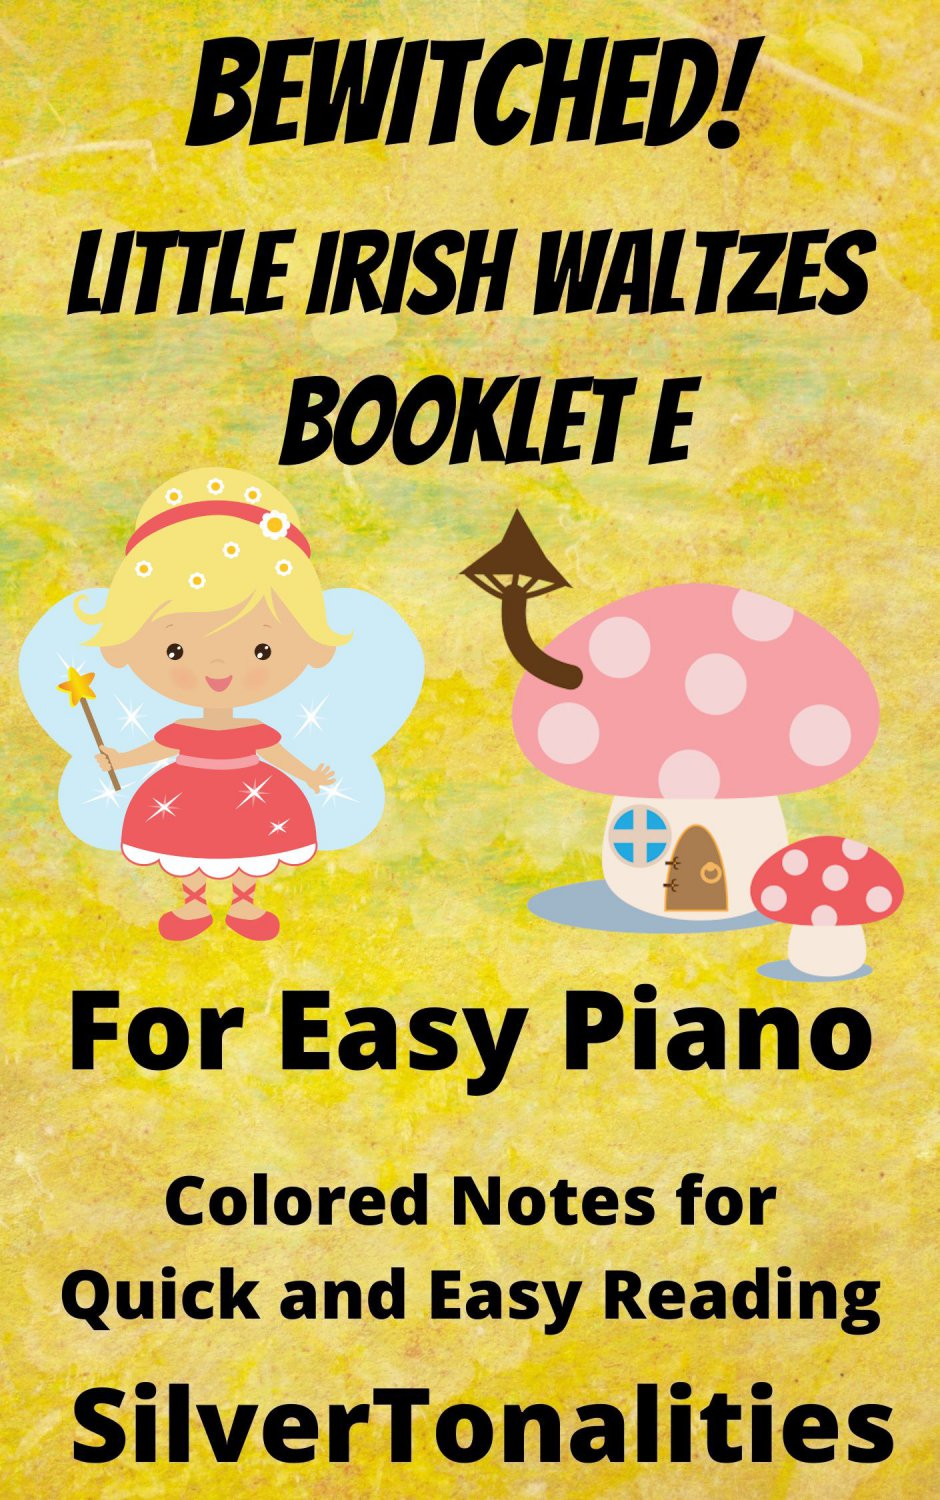 Bewitched! Little Irish Waltzes for Easiest Piano  Booklet E